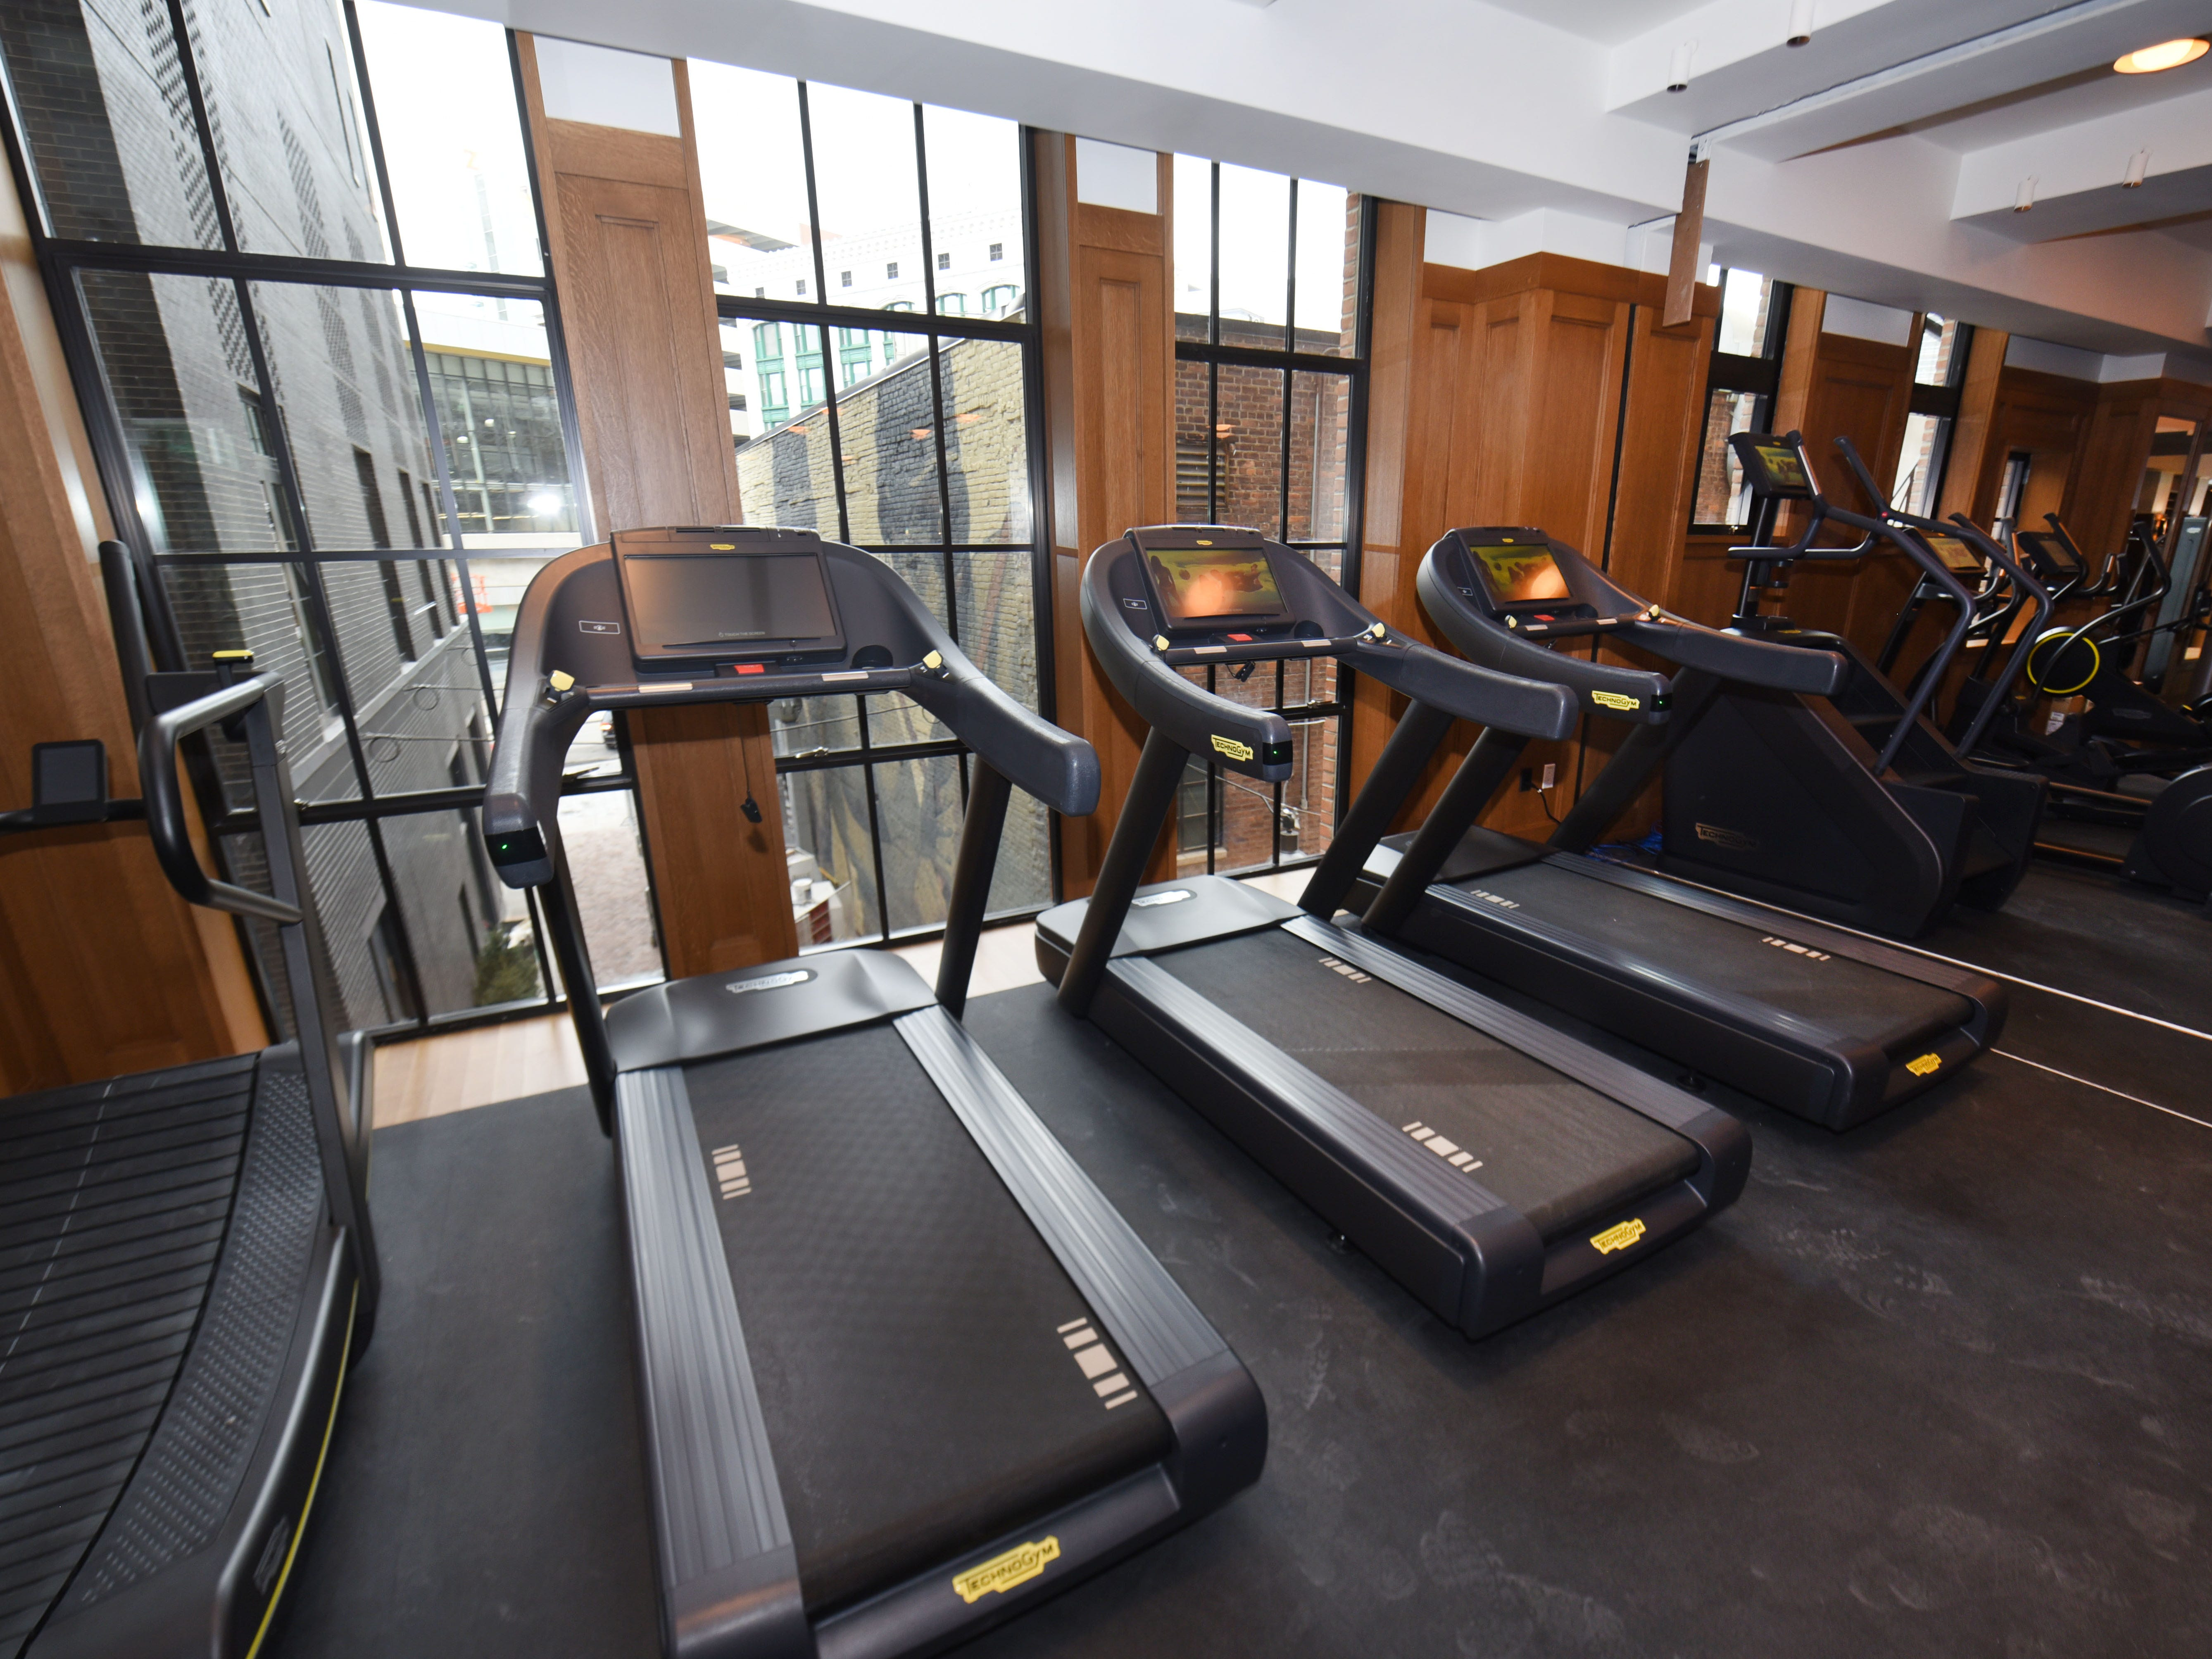 Workouts come with a view on the treadmills and other exercise equipment at the Shinola Hotel.